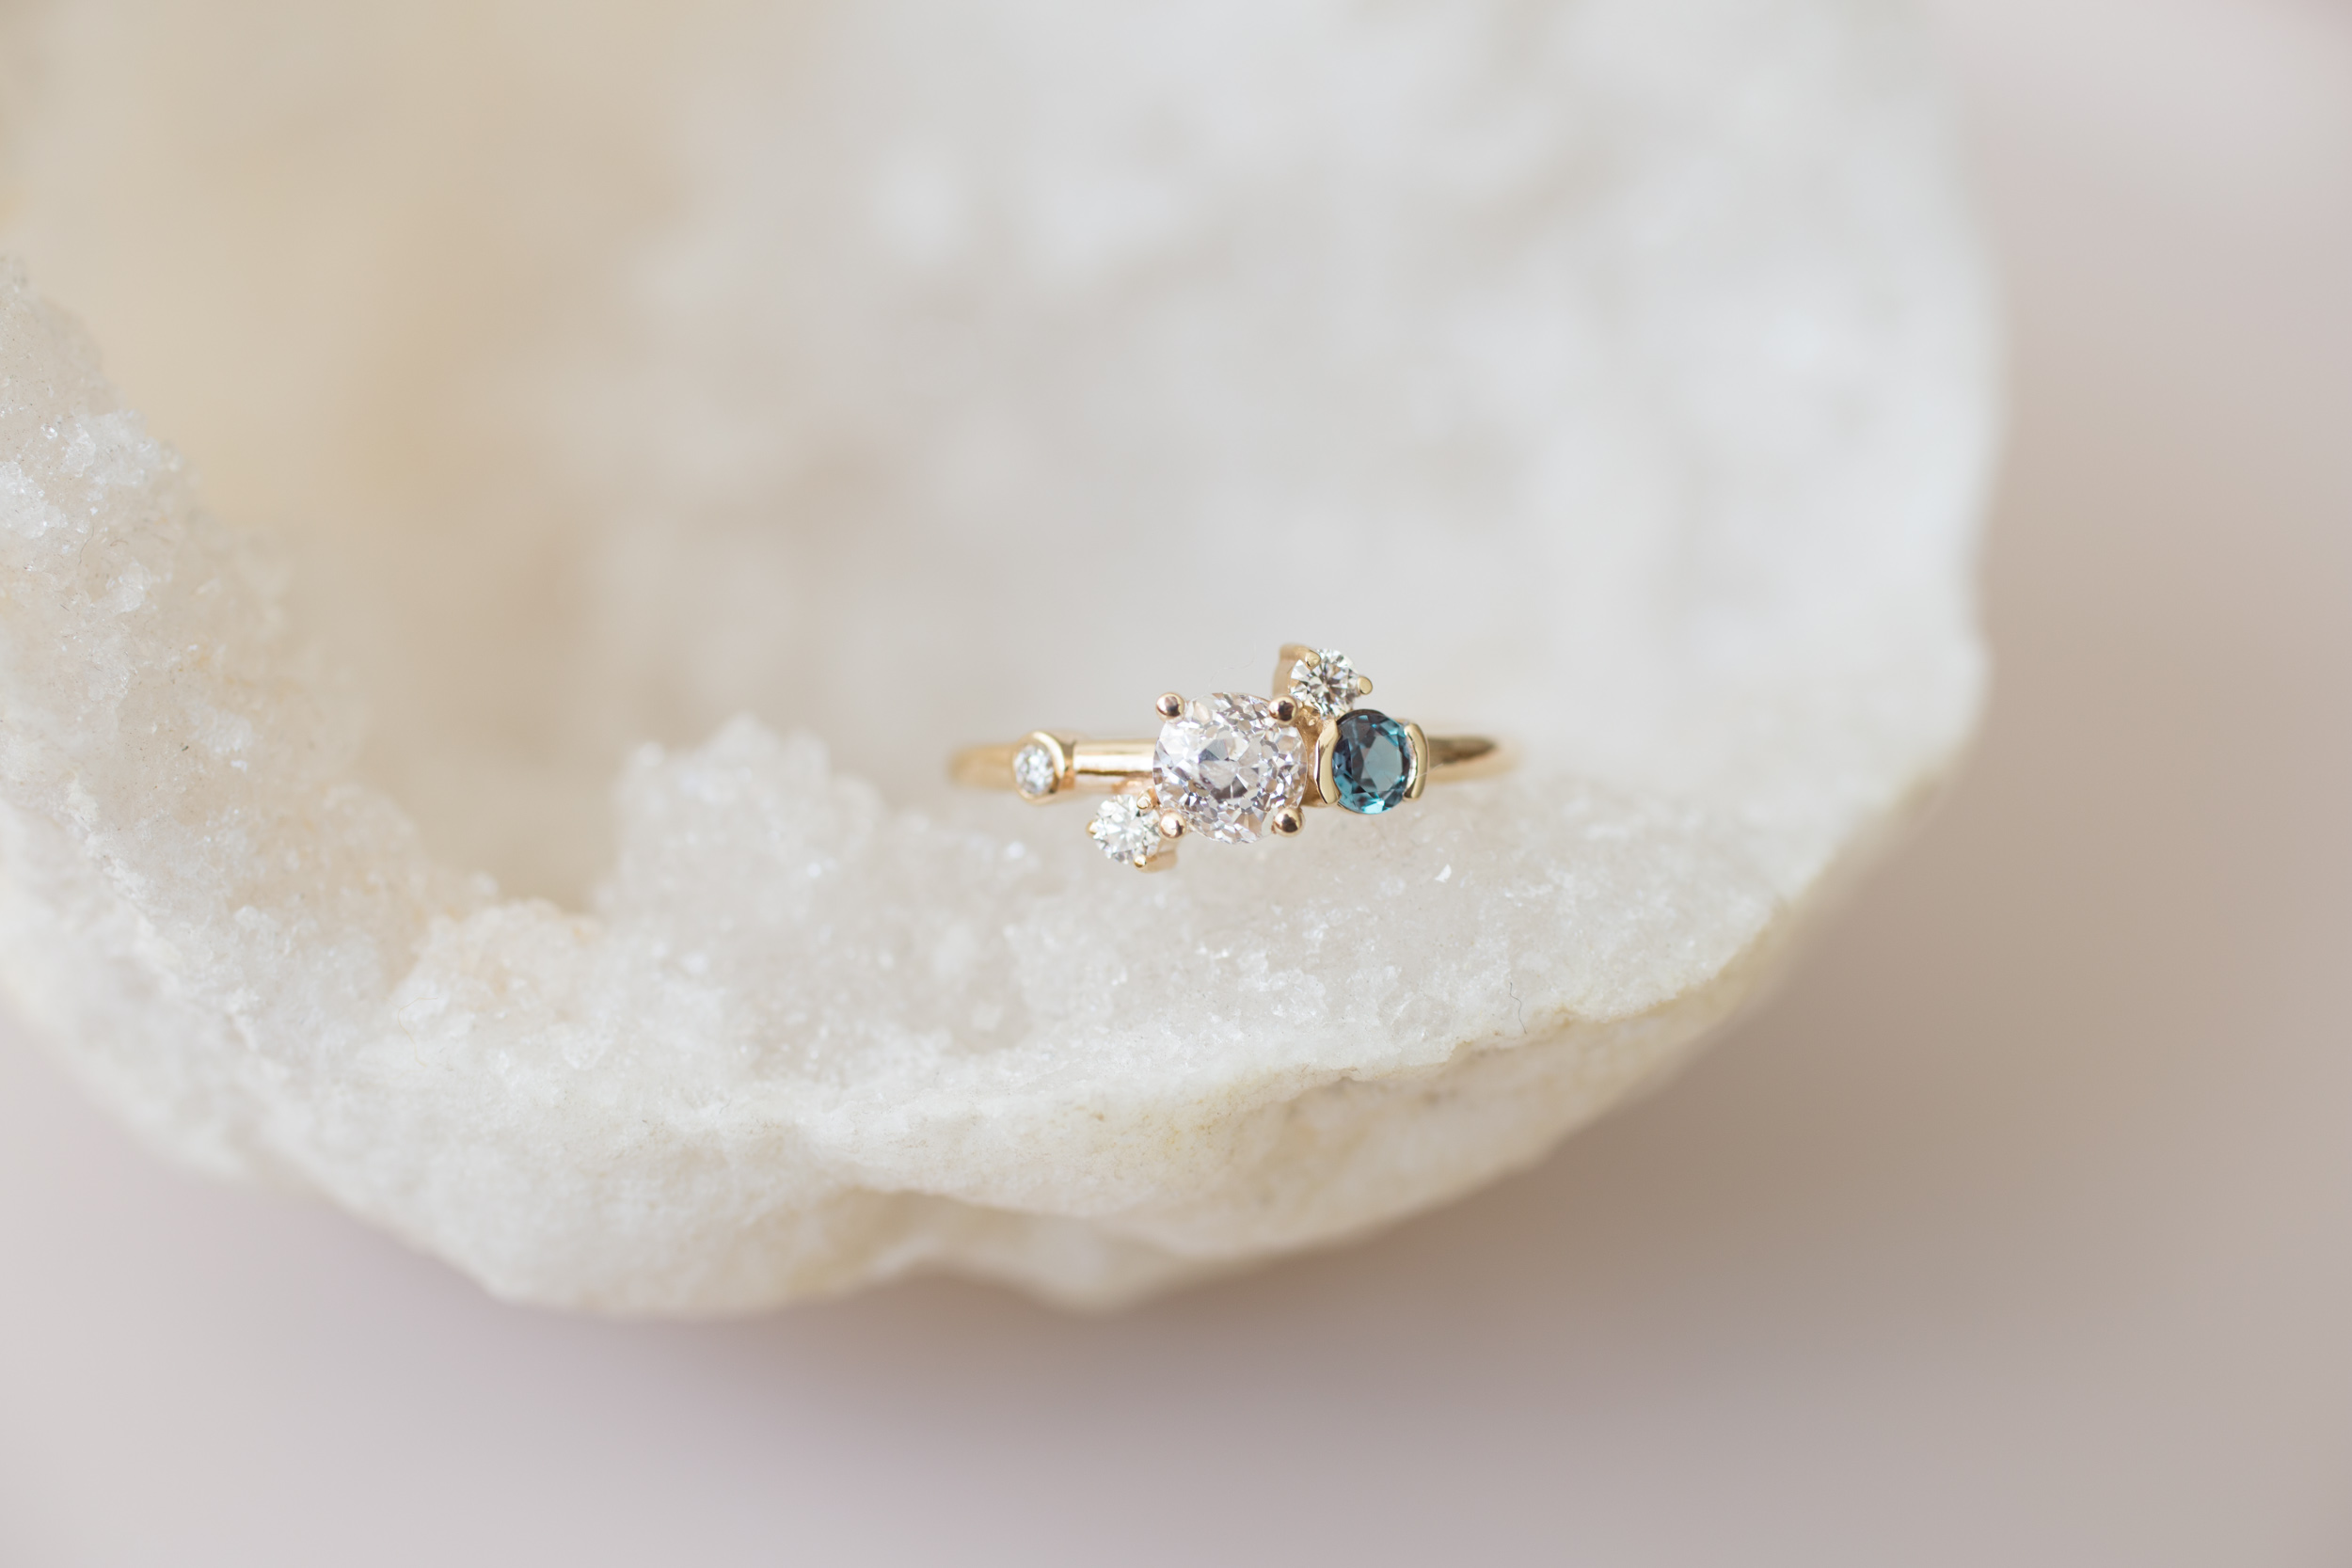 Lindsay + Matt Custom Heirloom Diamond + Alexandrite-4.jpg